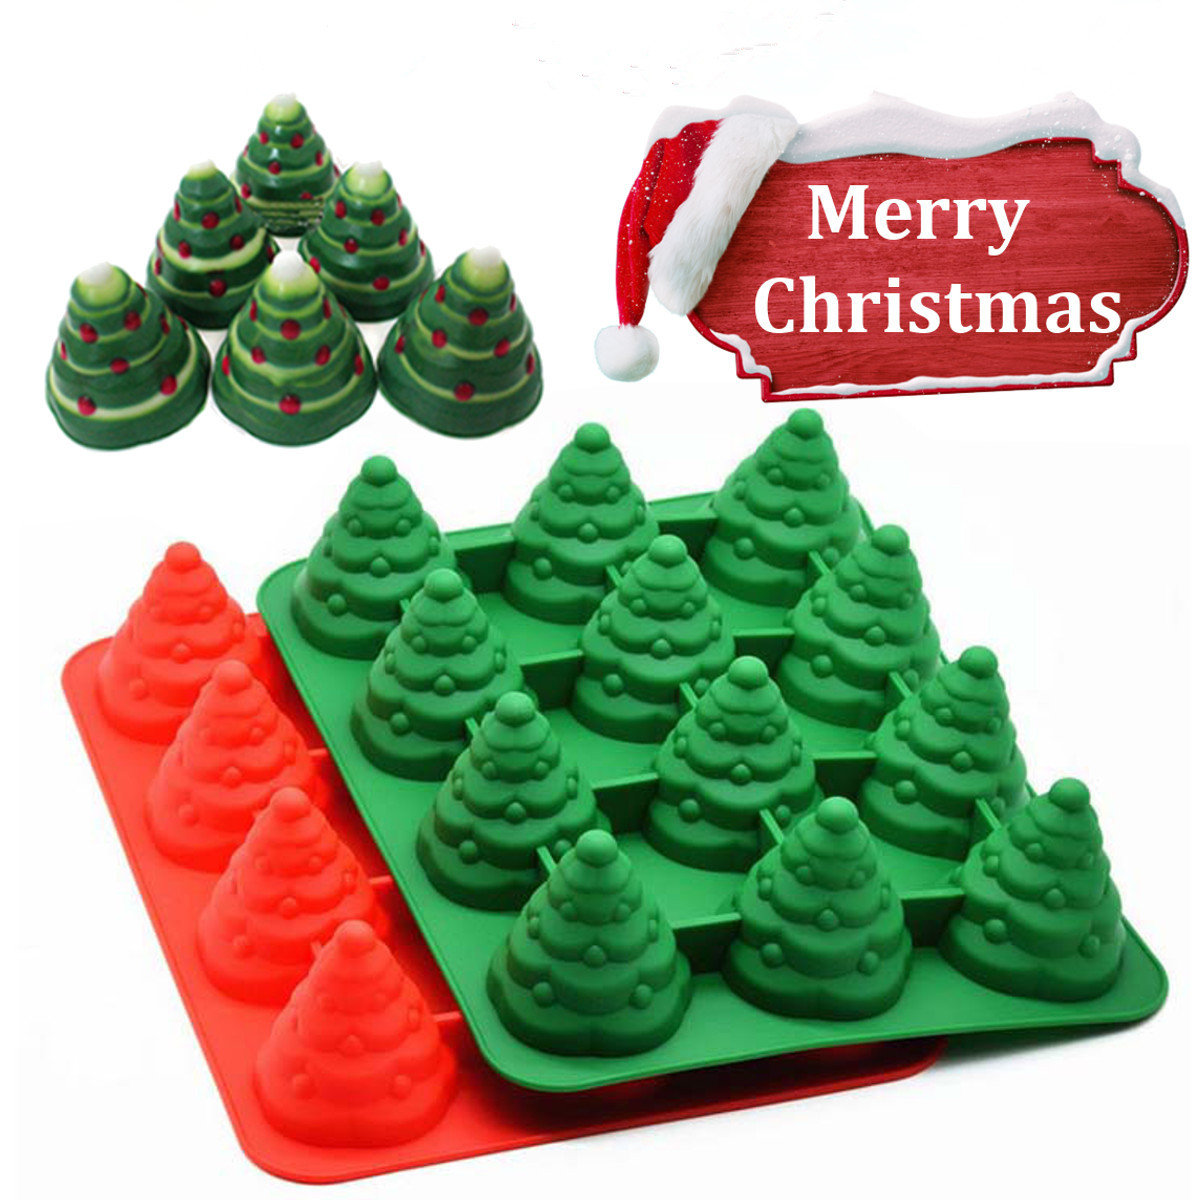 12 Holes Christmas Tree Cake Mold Mousses Silicone Mould Cake Pan Tin Tray